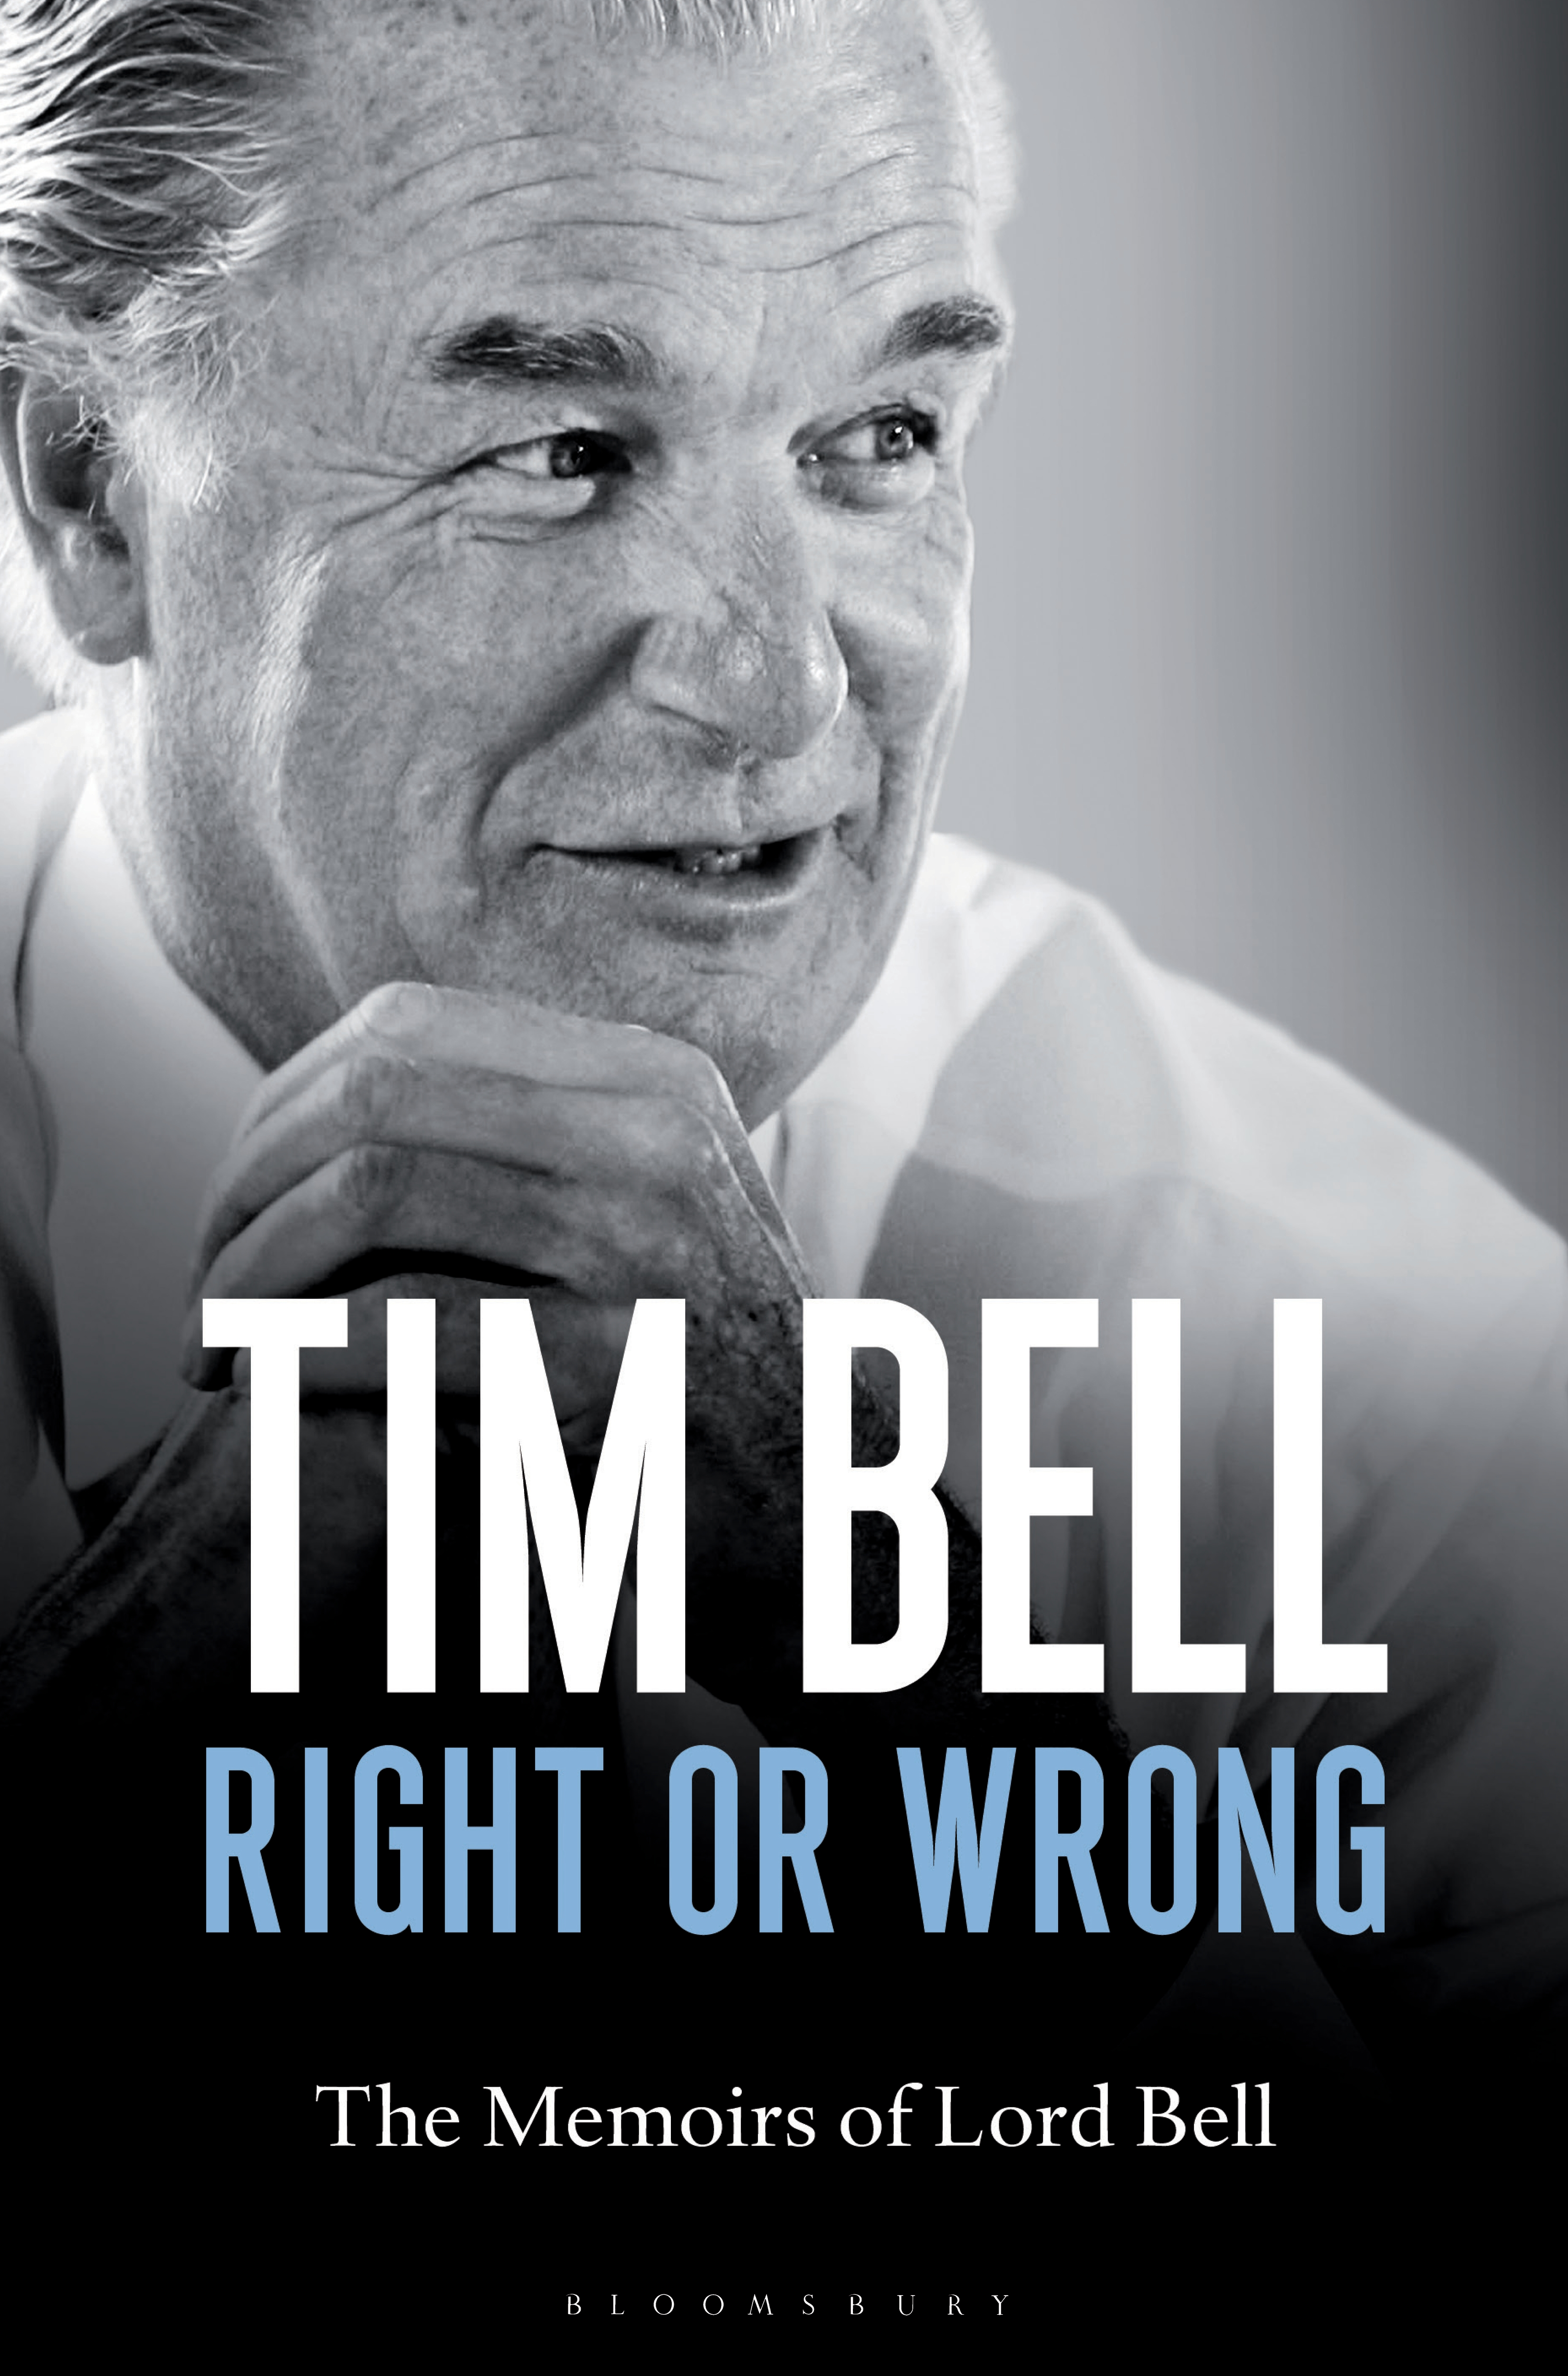 Right or Wrong The Memoirs of Lord Bell